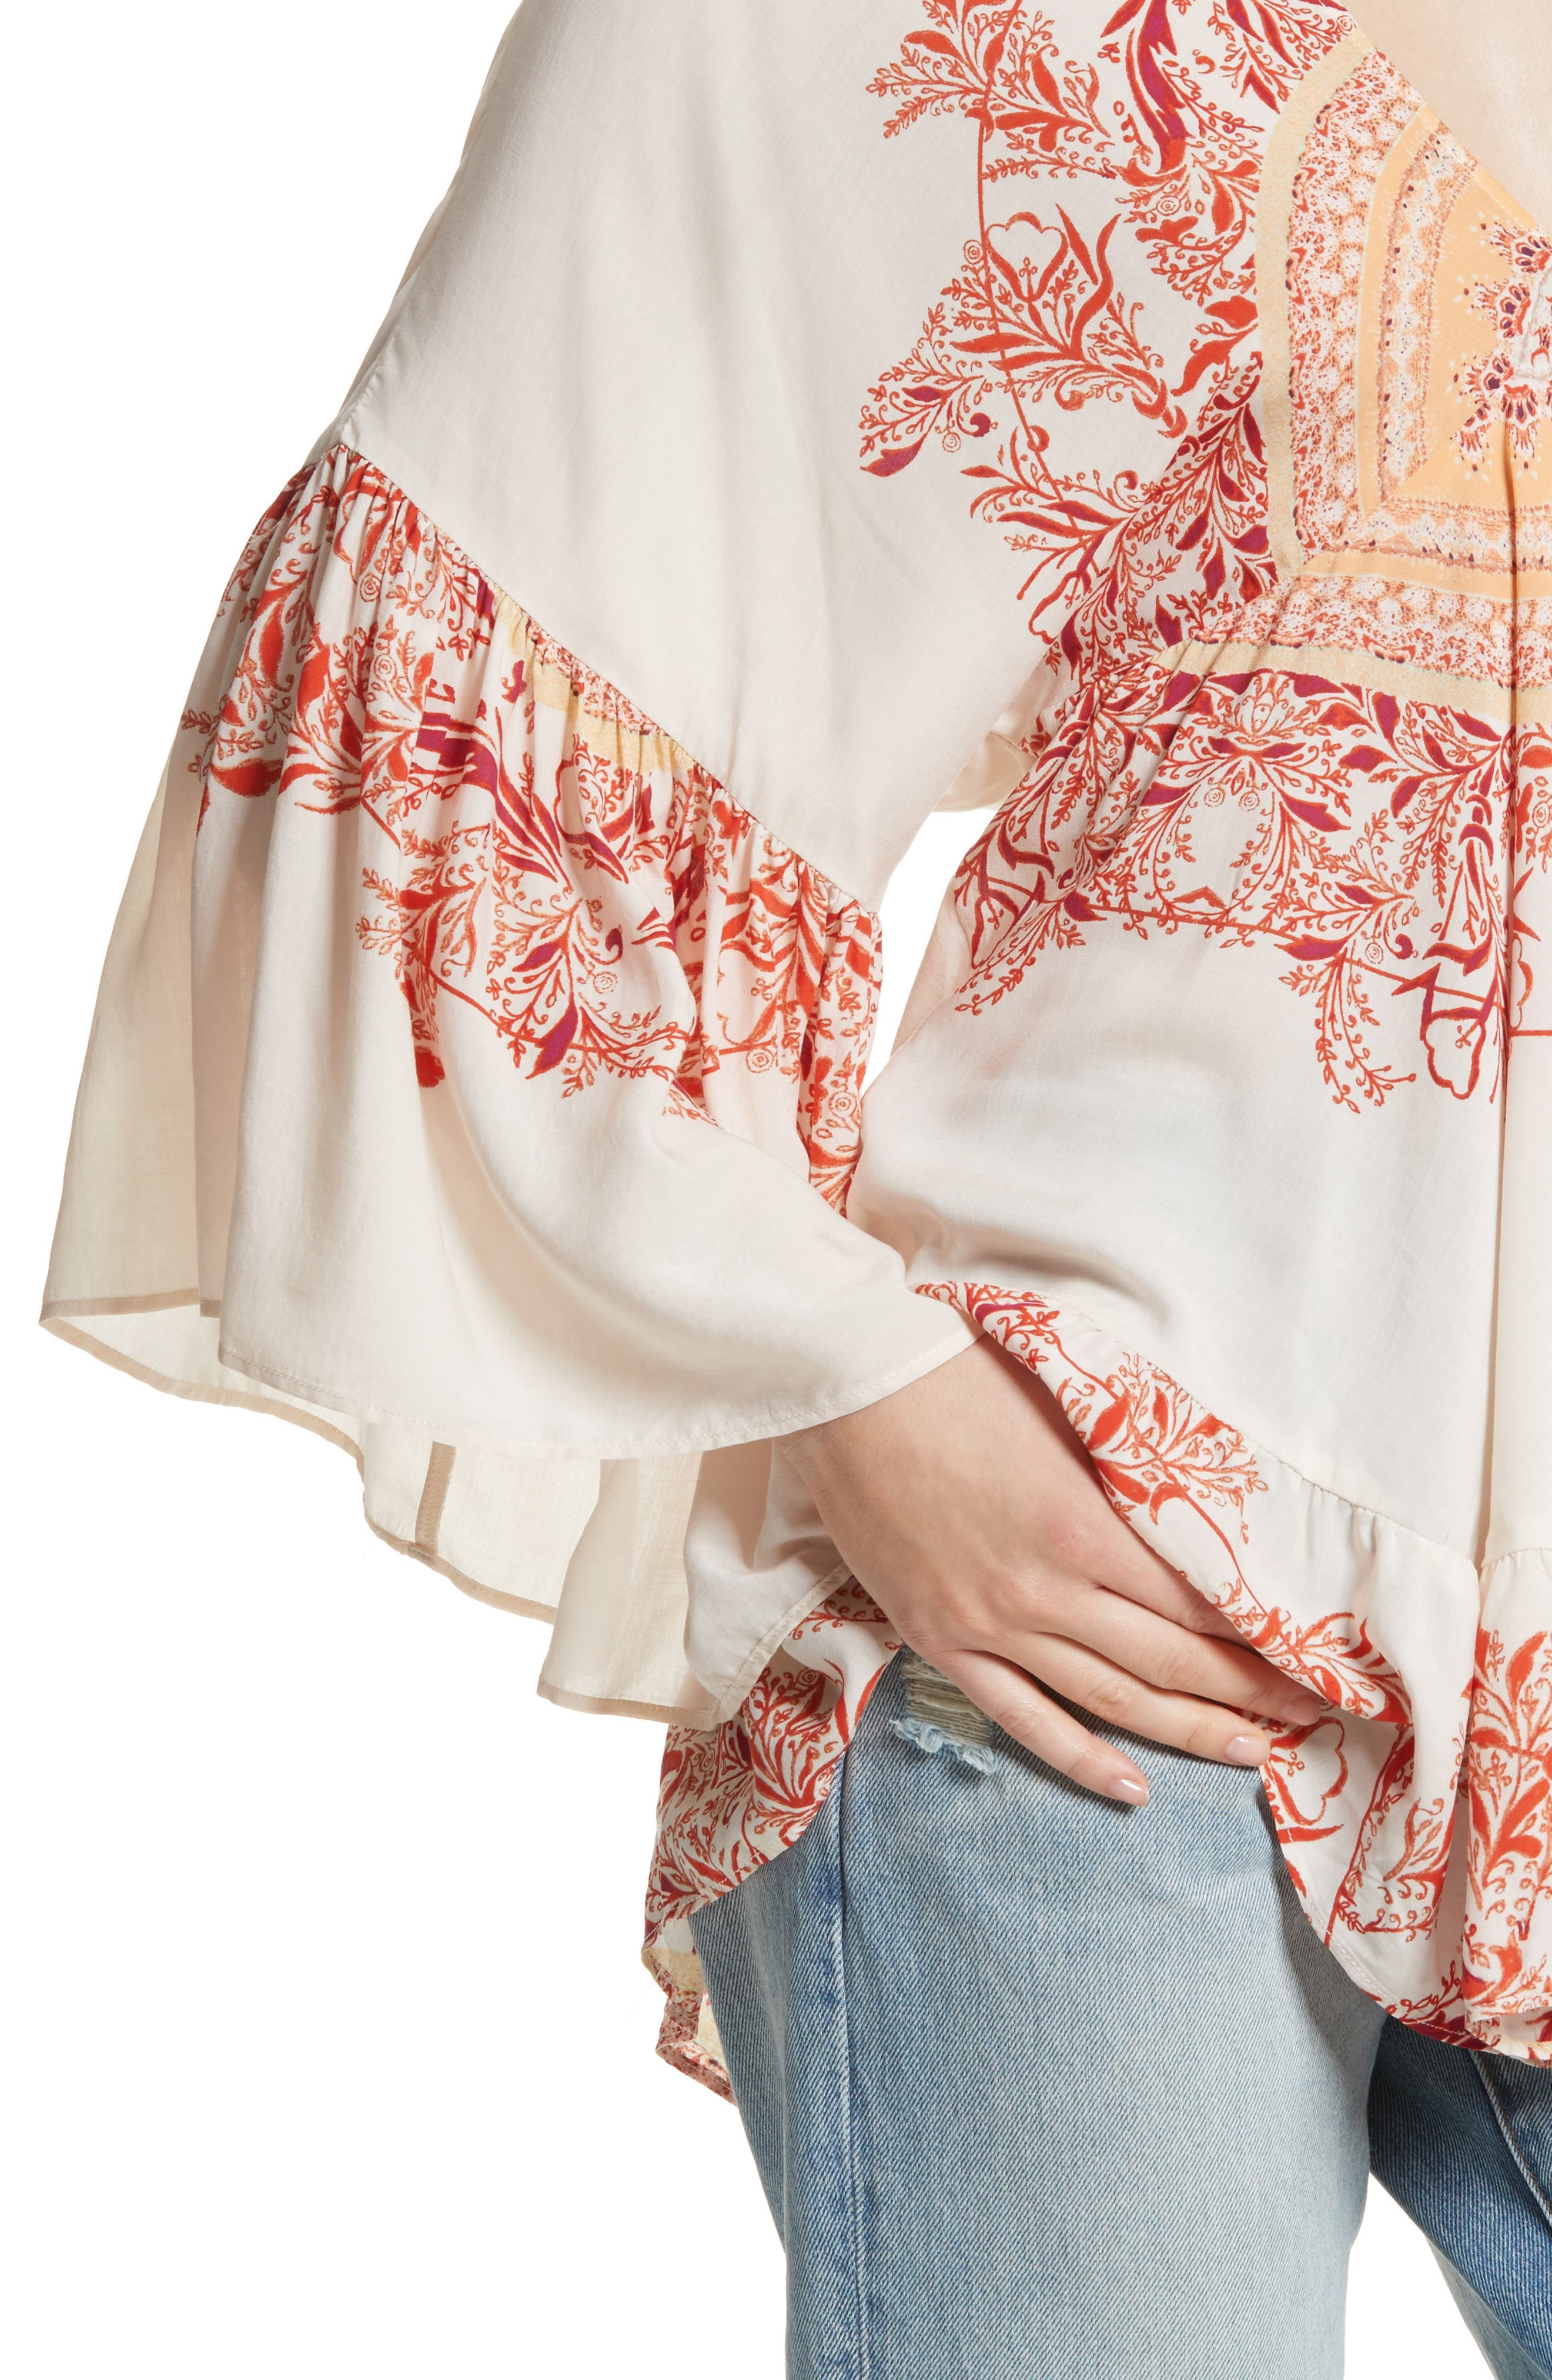 Sunset Dreams Ruffle Top,                             Alternate thumbnail 4, color,                             Sand